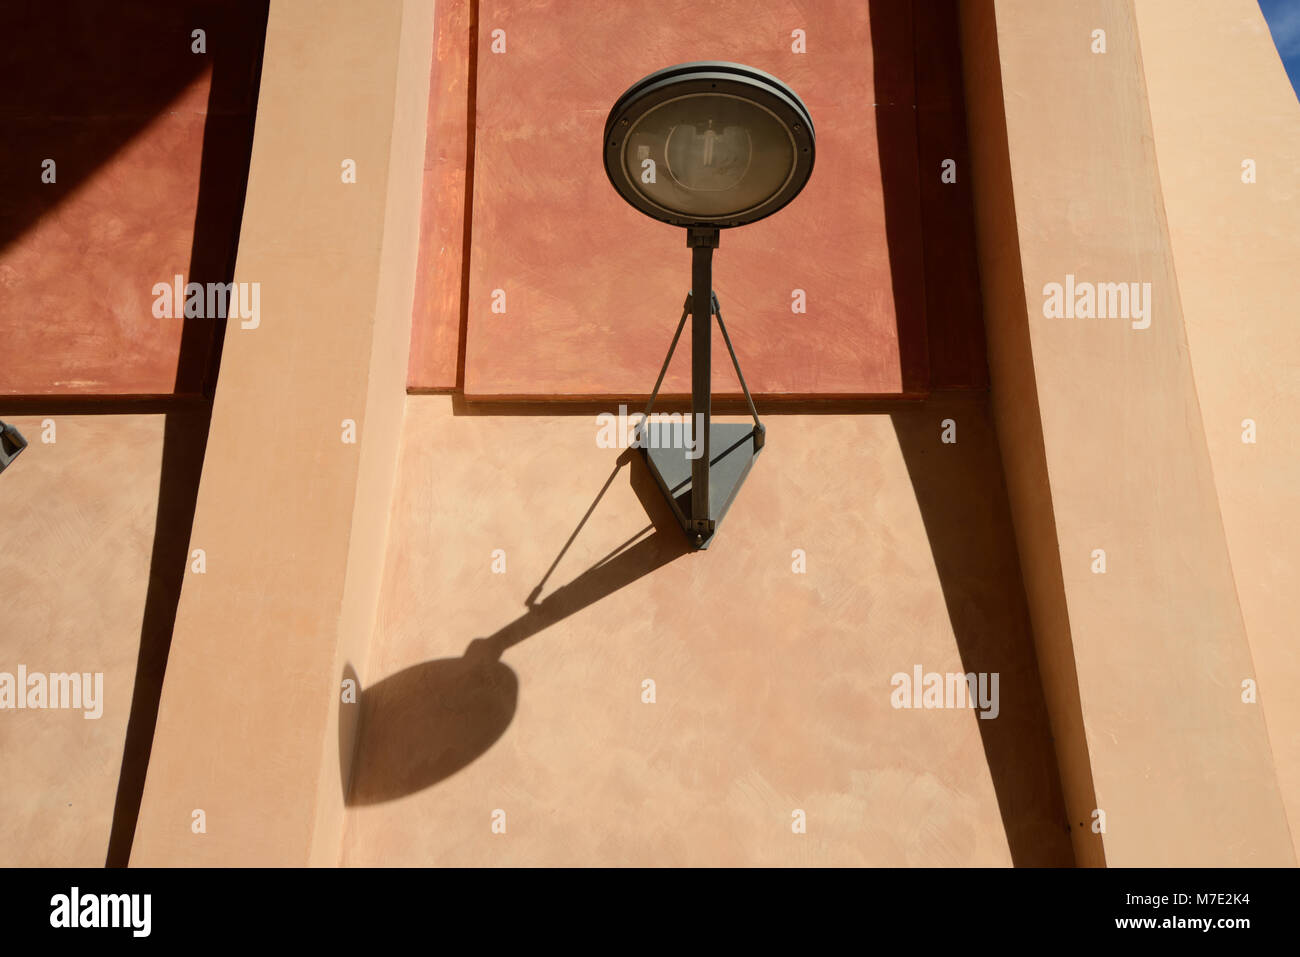 Contemporary Street Light or Modern Designer Street Lamp Aix-en-Provence France - Stock Image